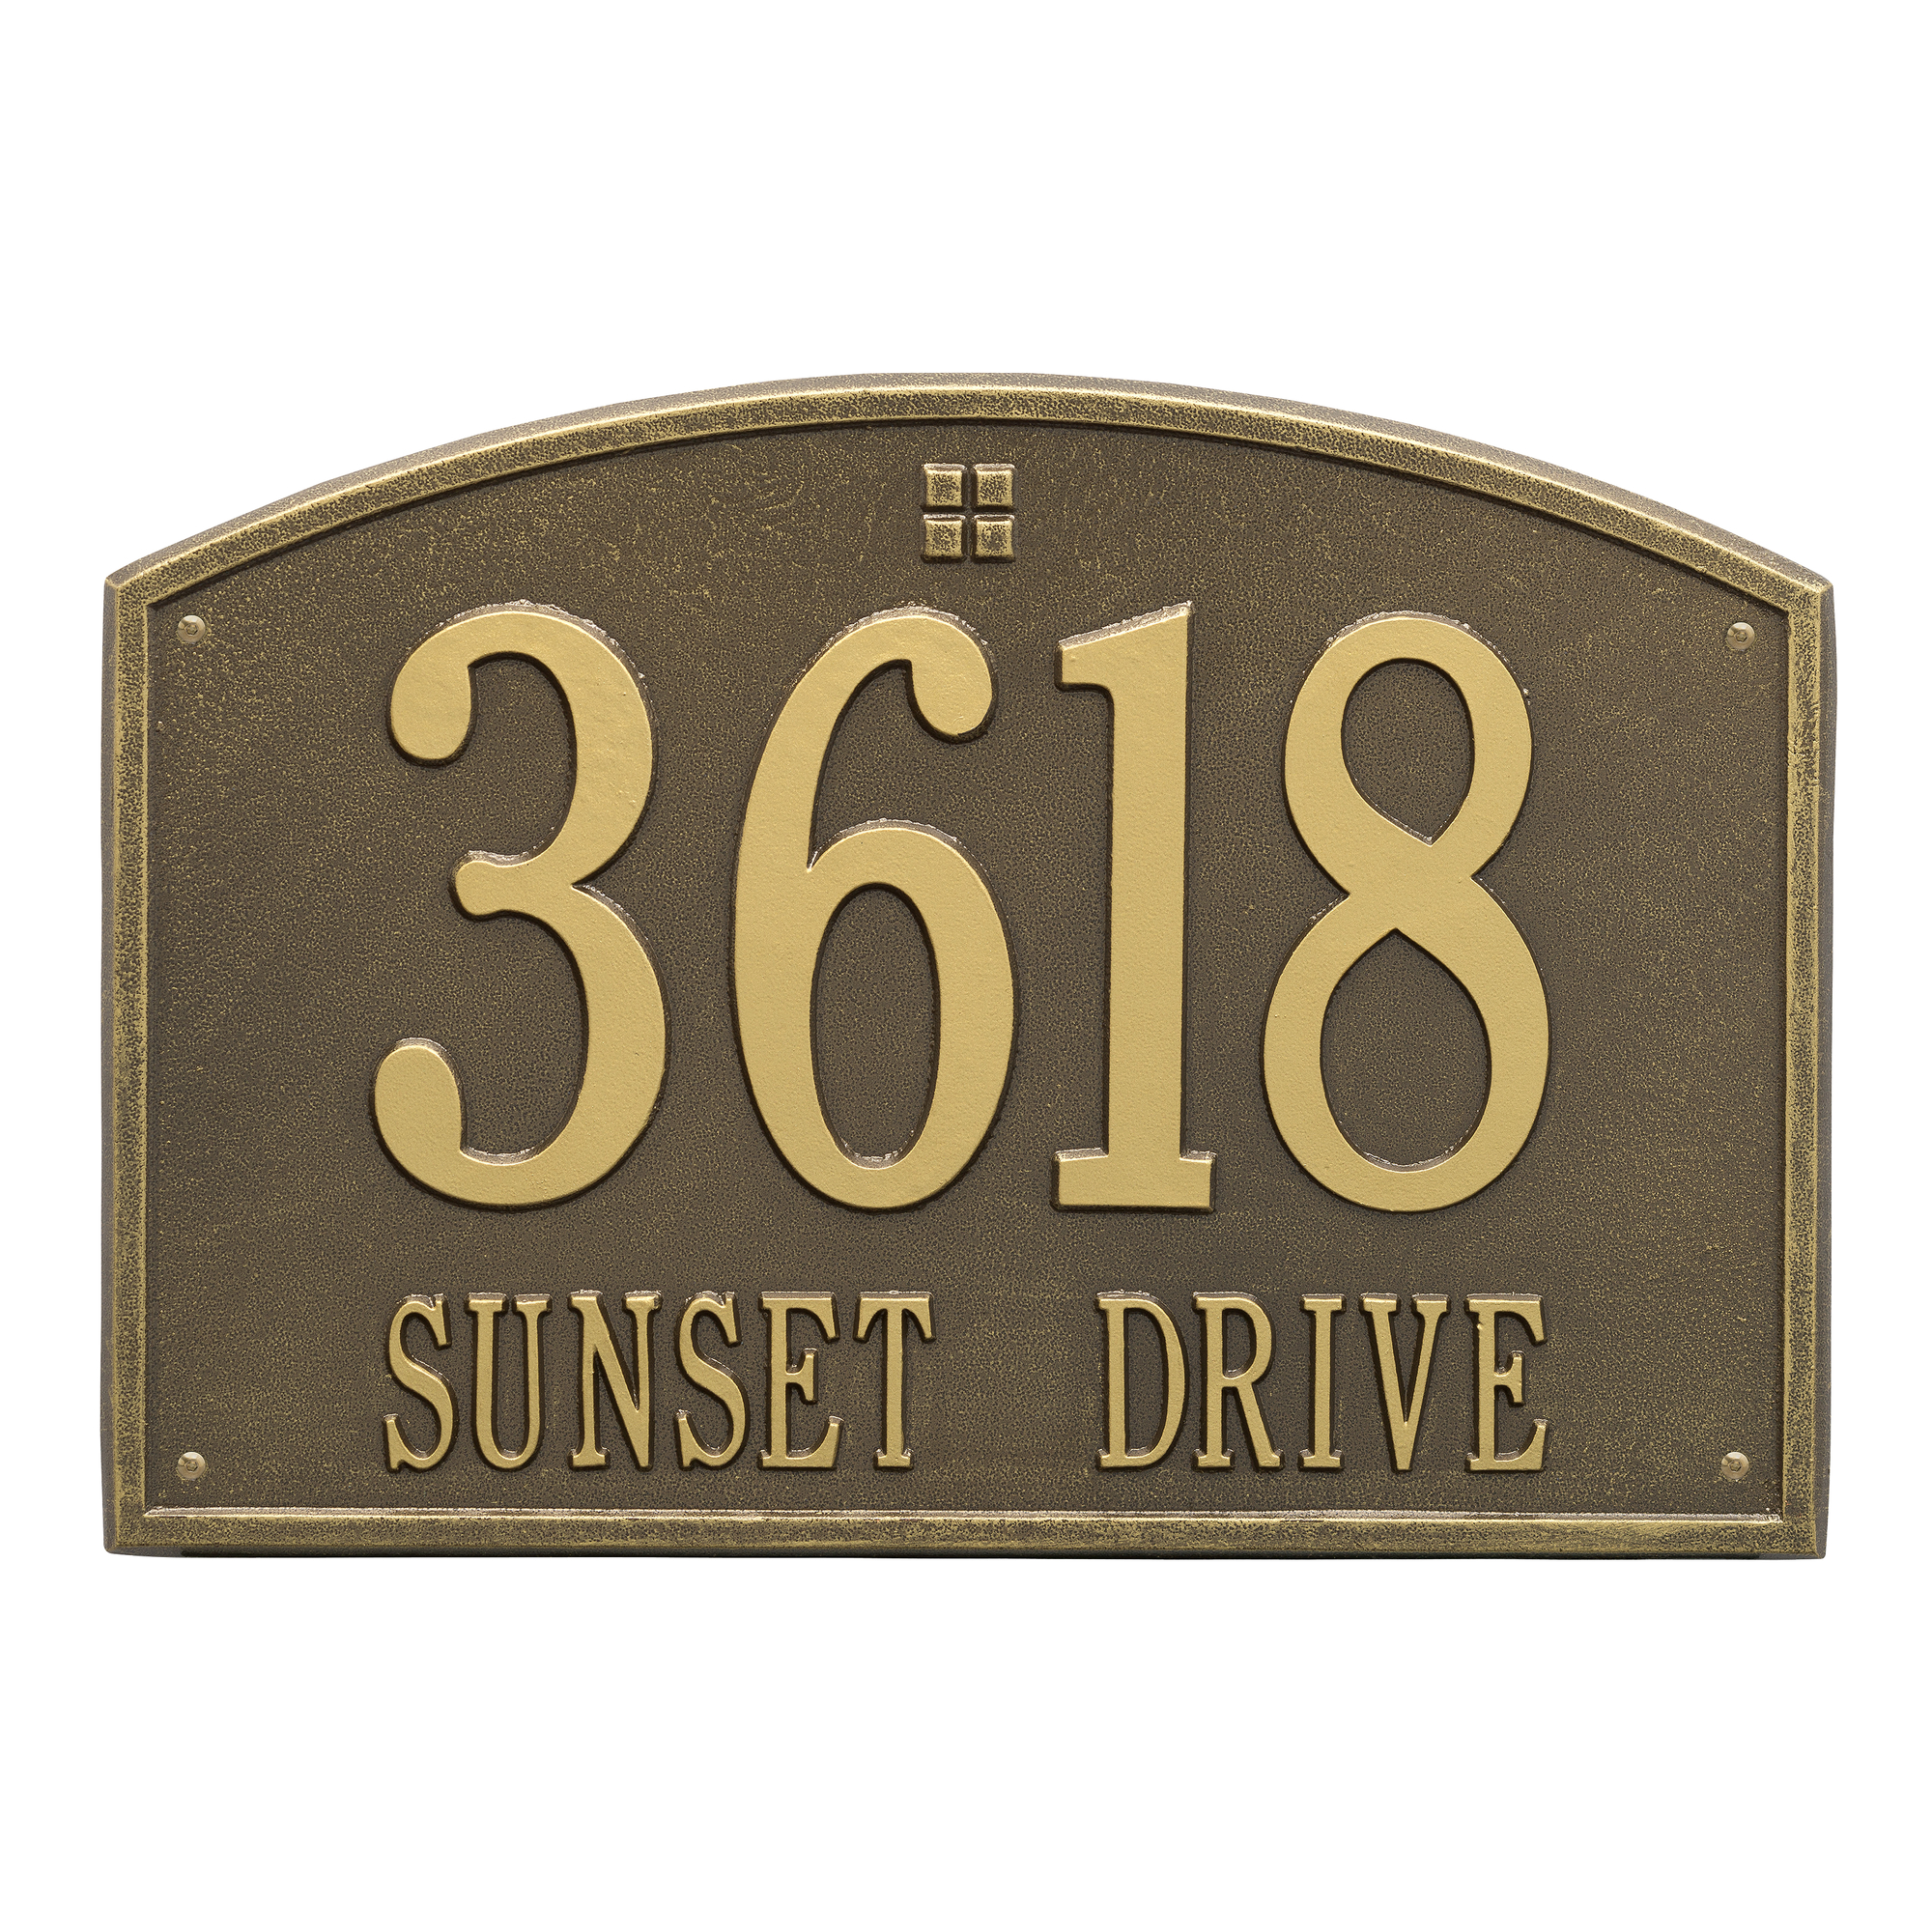 Whitehall Products 2-Line Personalized Address Wall Plaque in Antique Brass by Whitehall